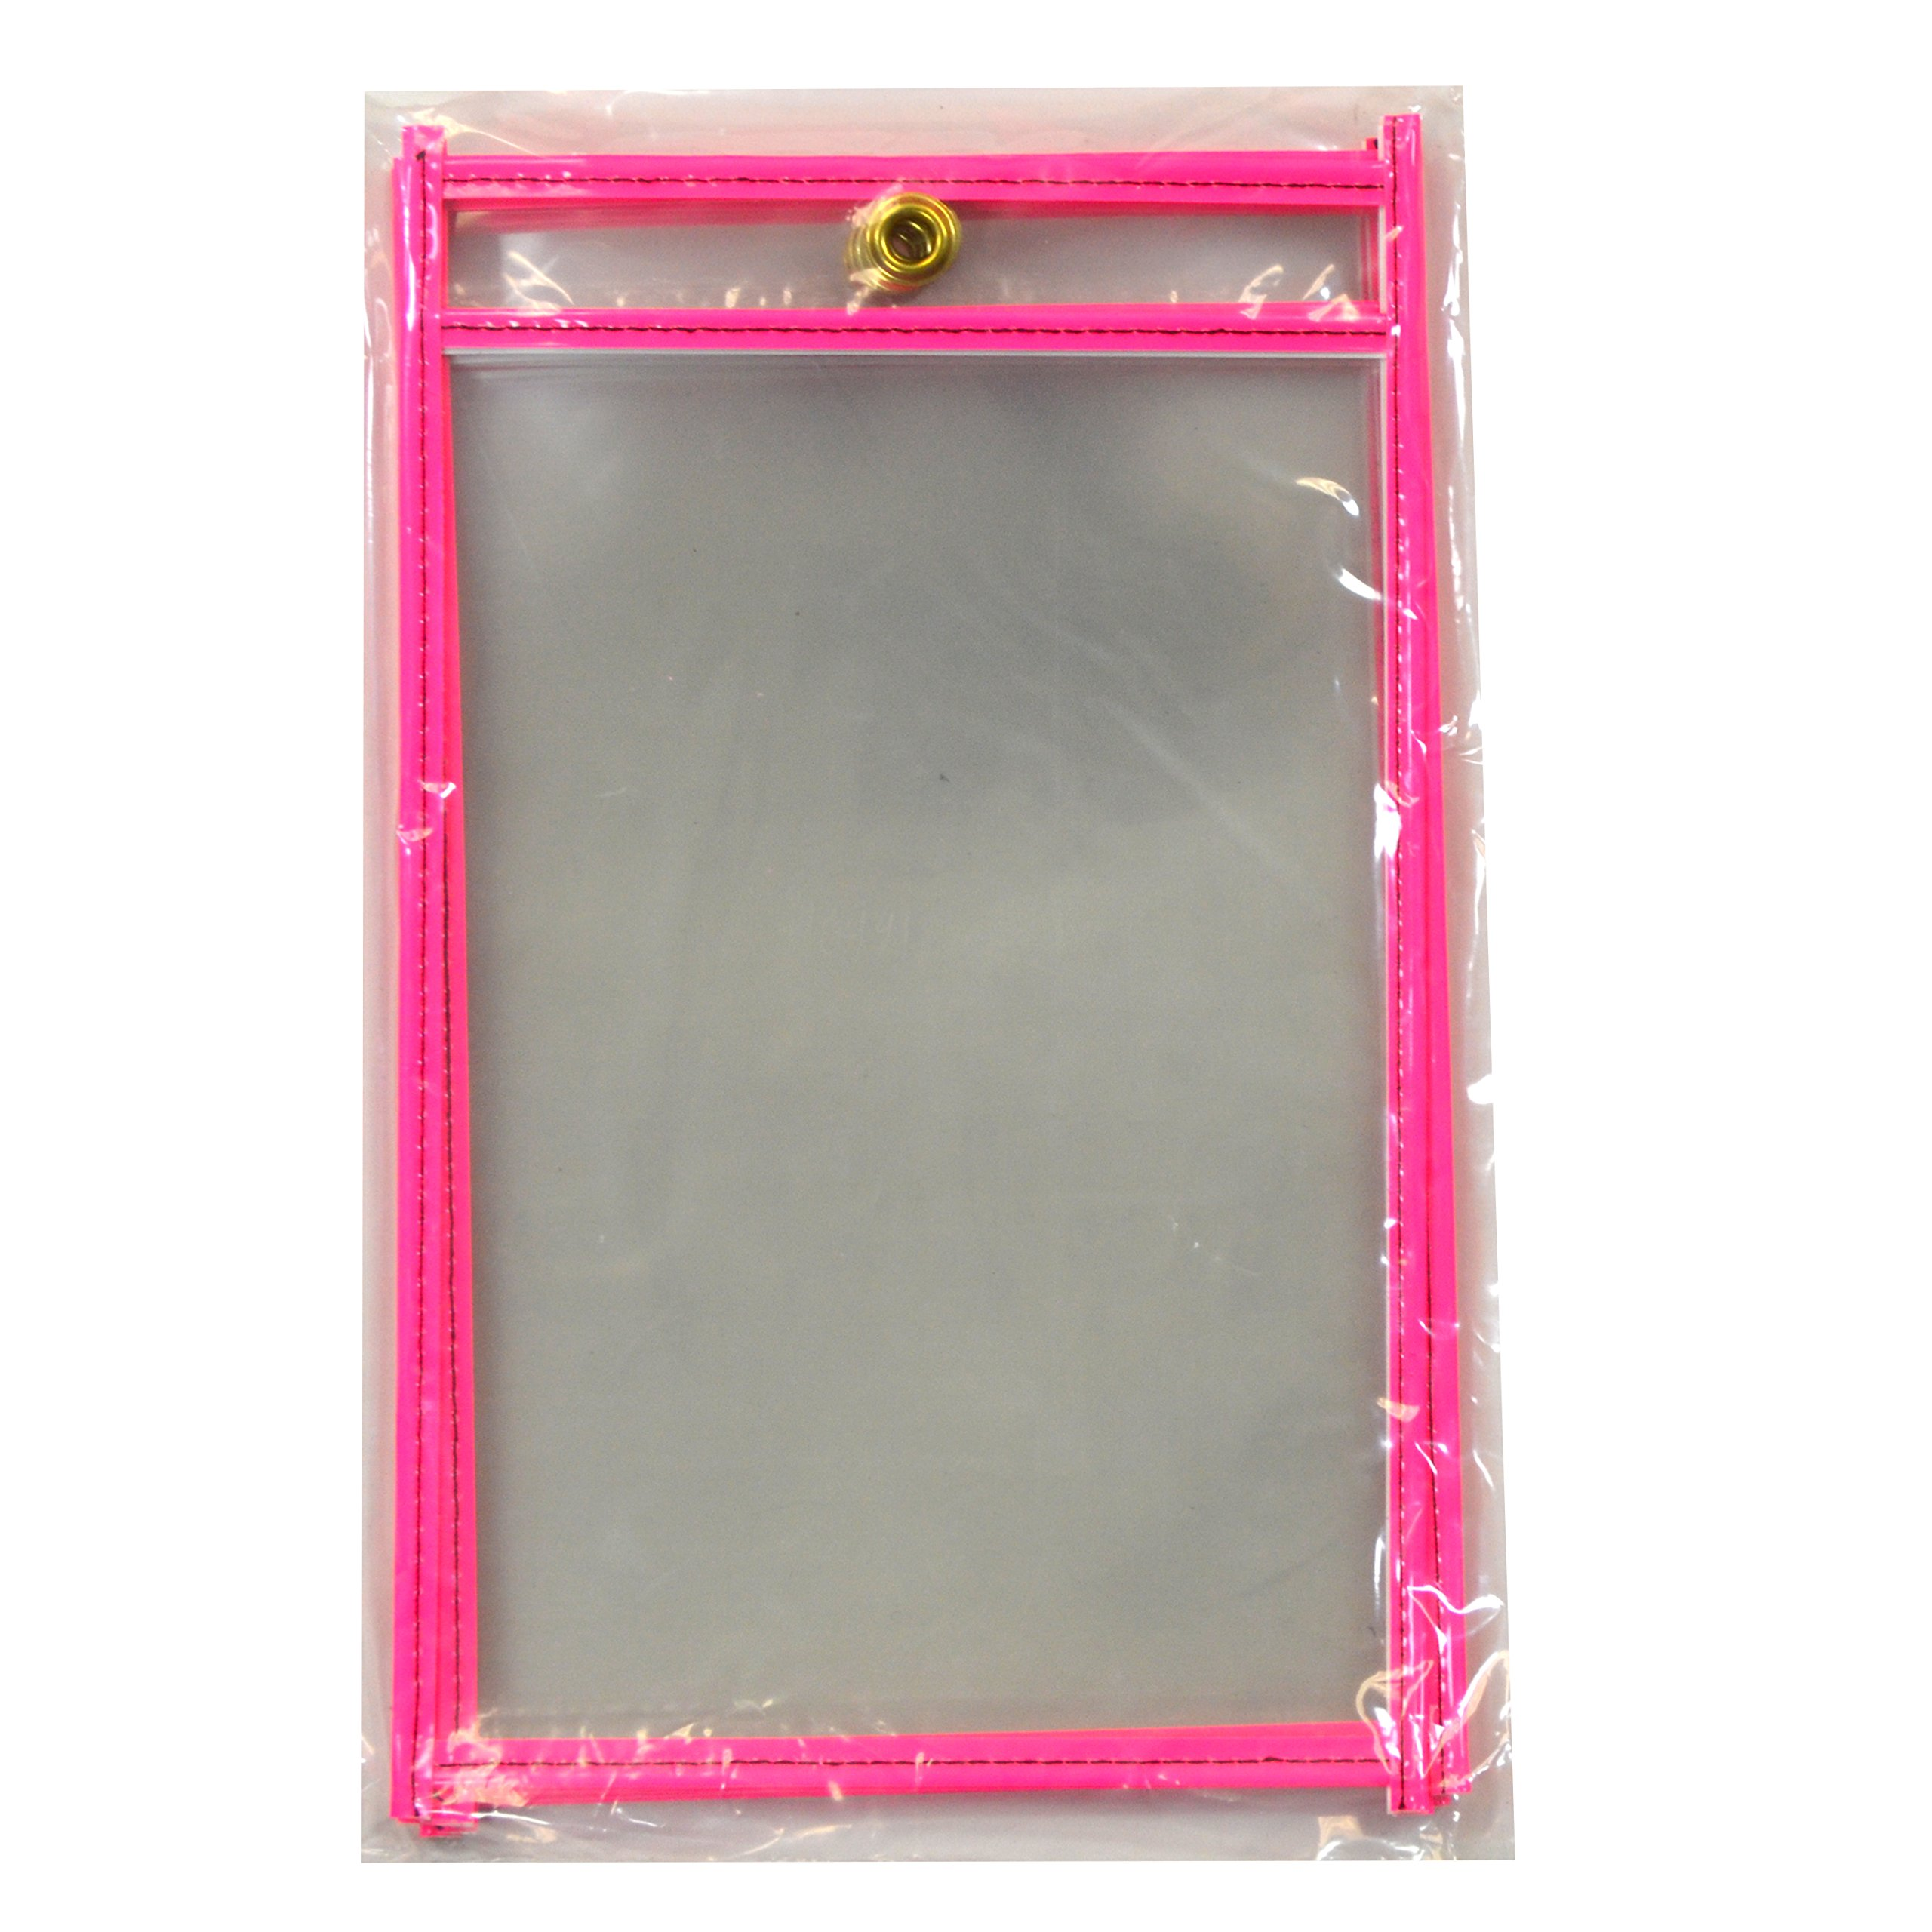 """C-Line Stitched Shop Ticket Holders, Both Sides Clear, 5"""" x 8"""", 5 per Pack, Neon Pink (40491)"""